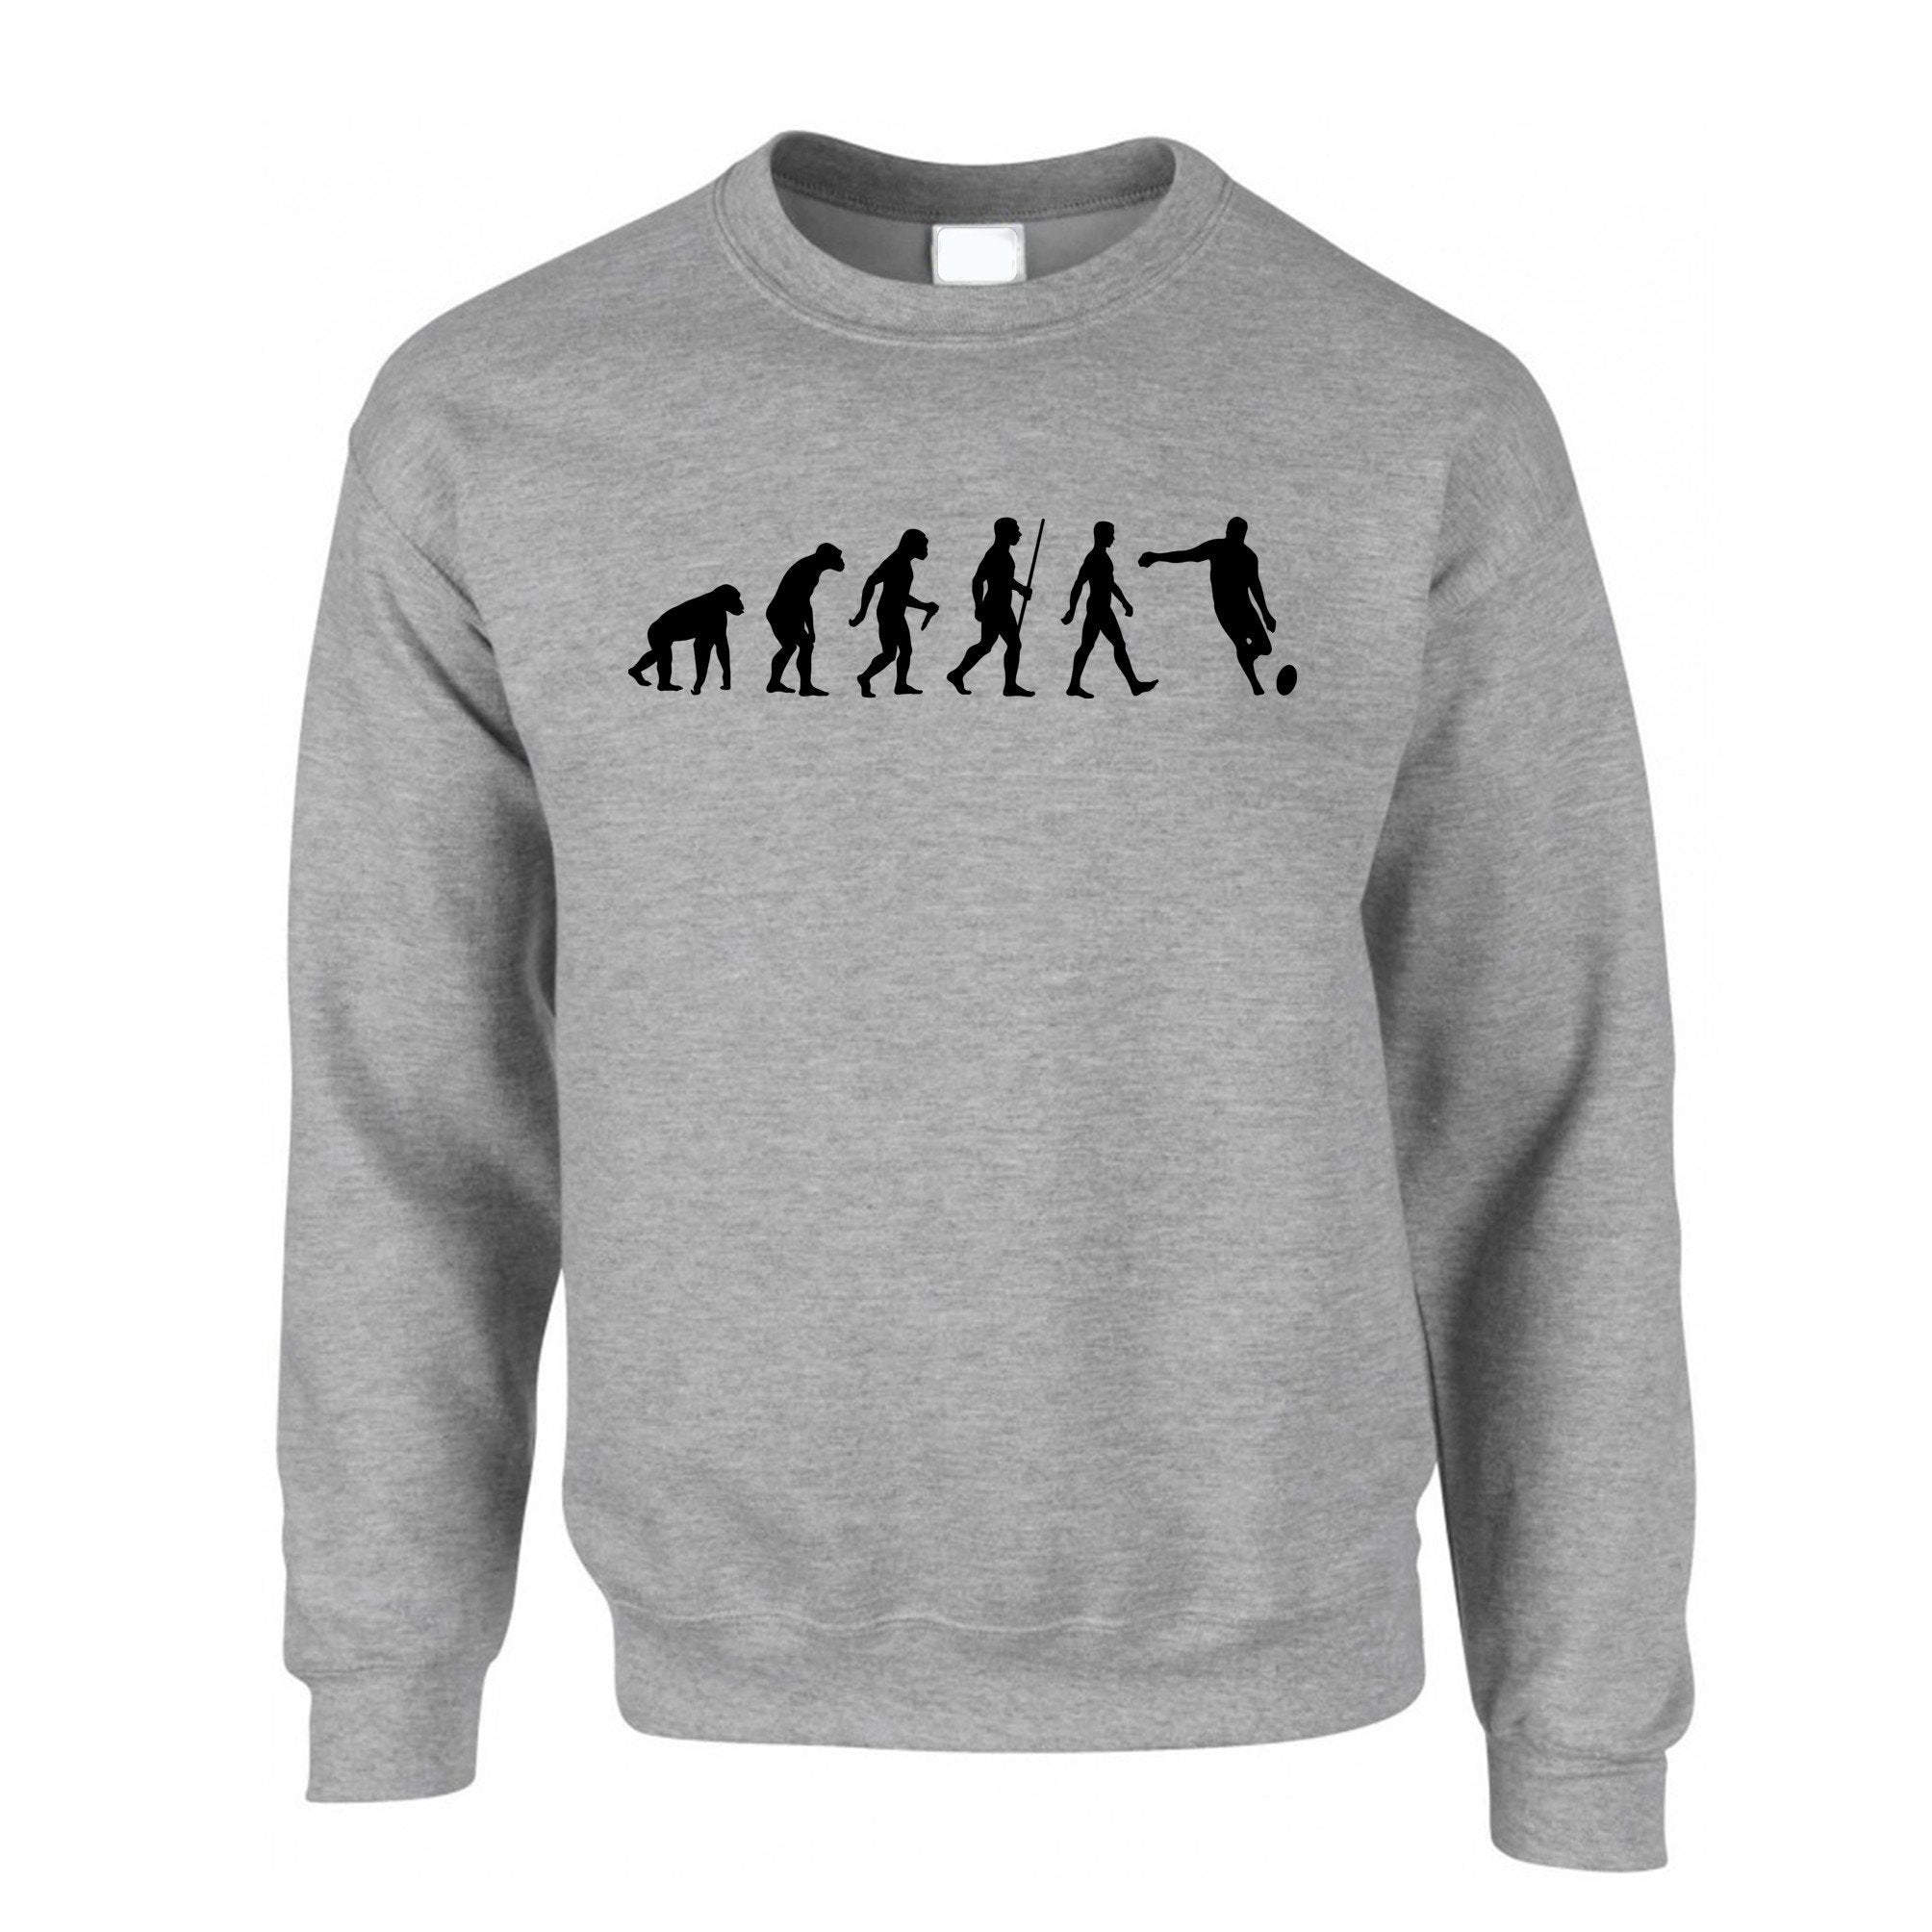 Sports Jumper Evolution Of A Rugby Ball Kick Sweatshirt Sweater